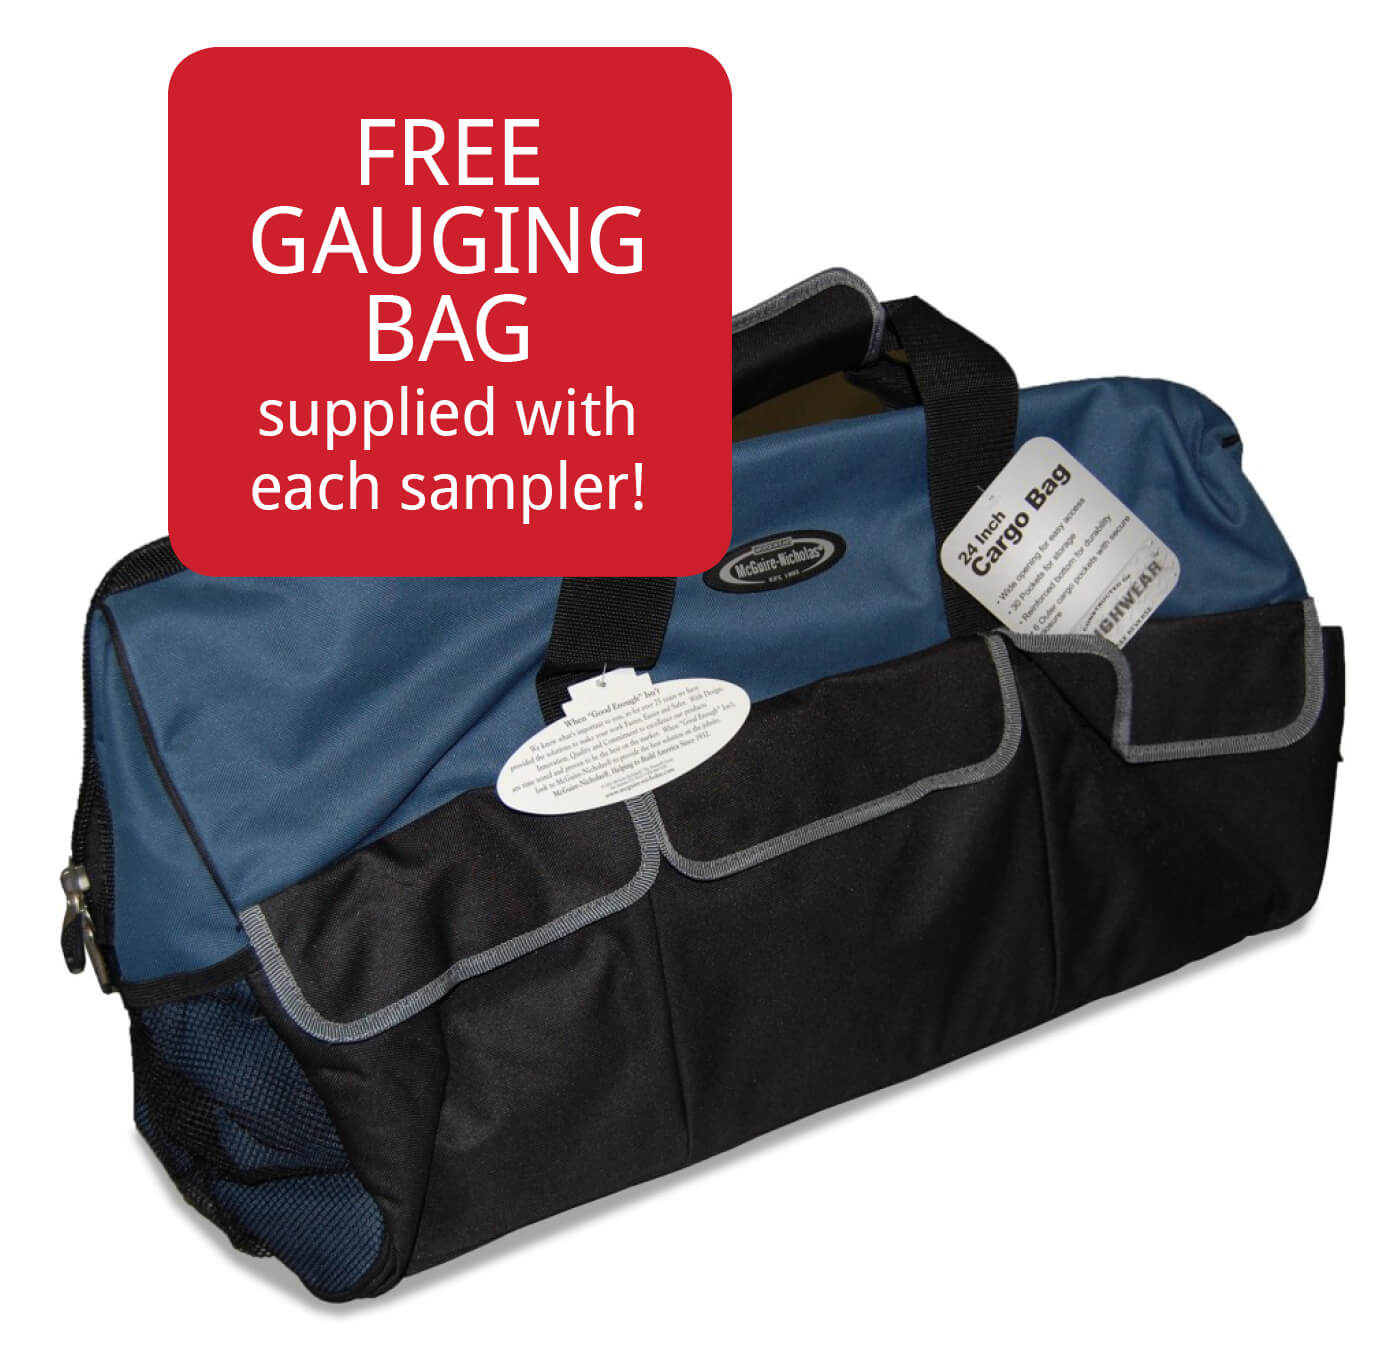 Free Large Gauging Bag